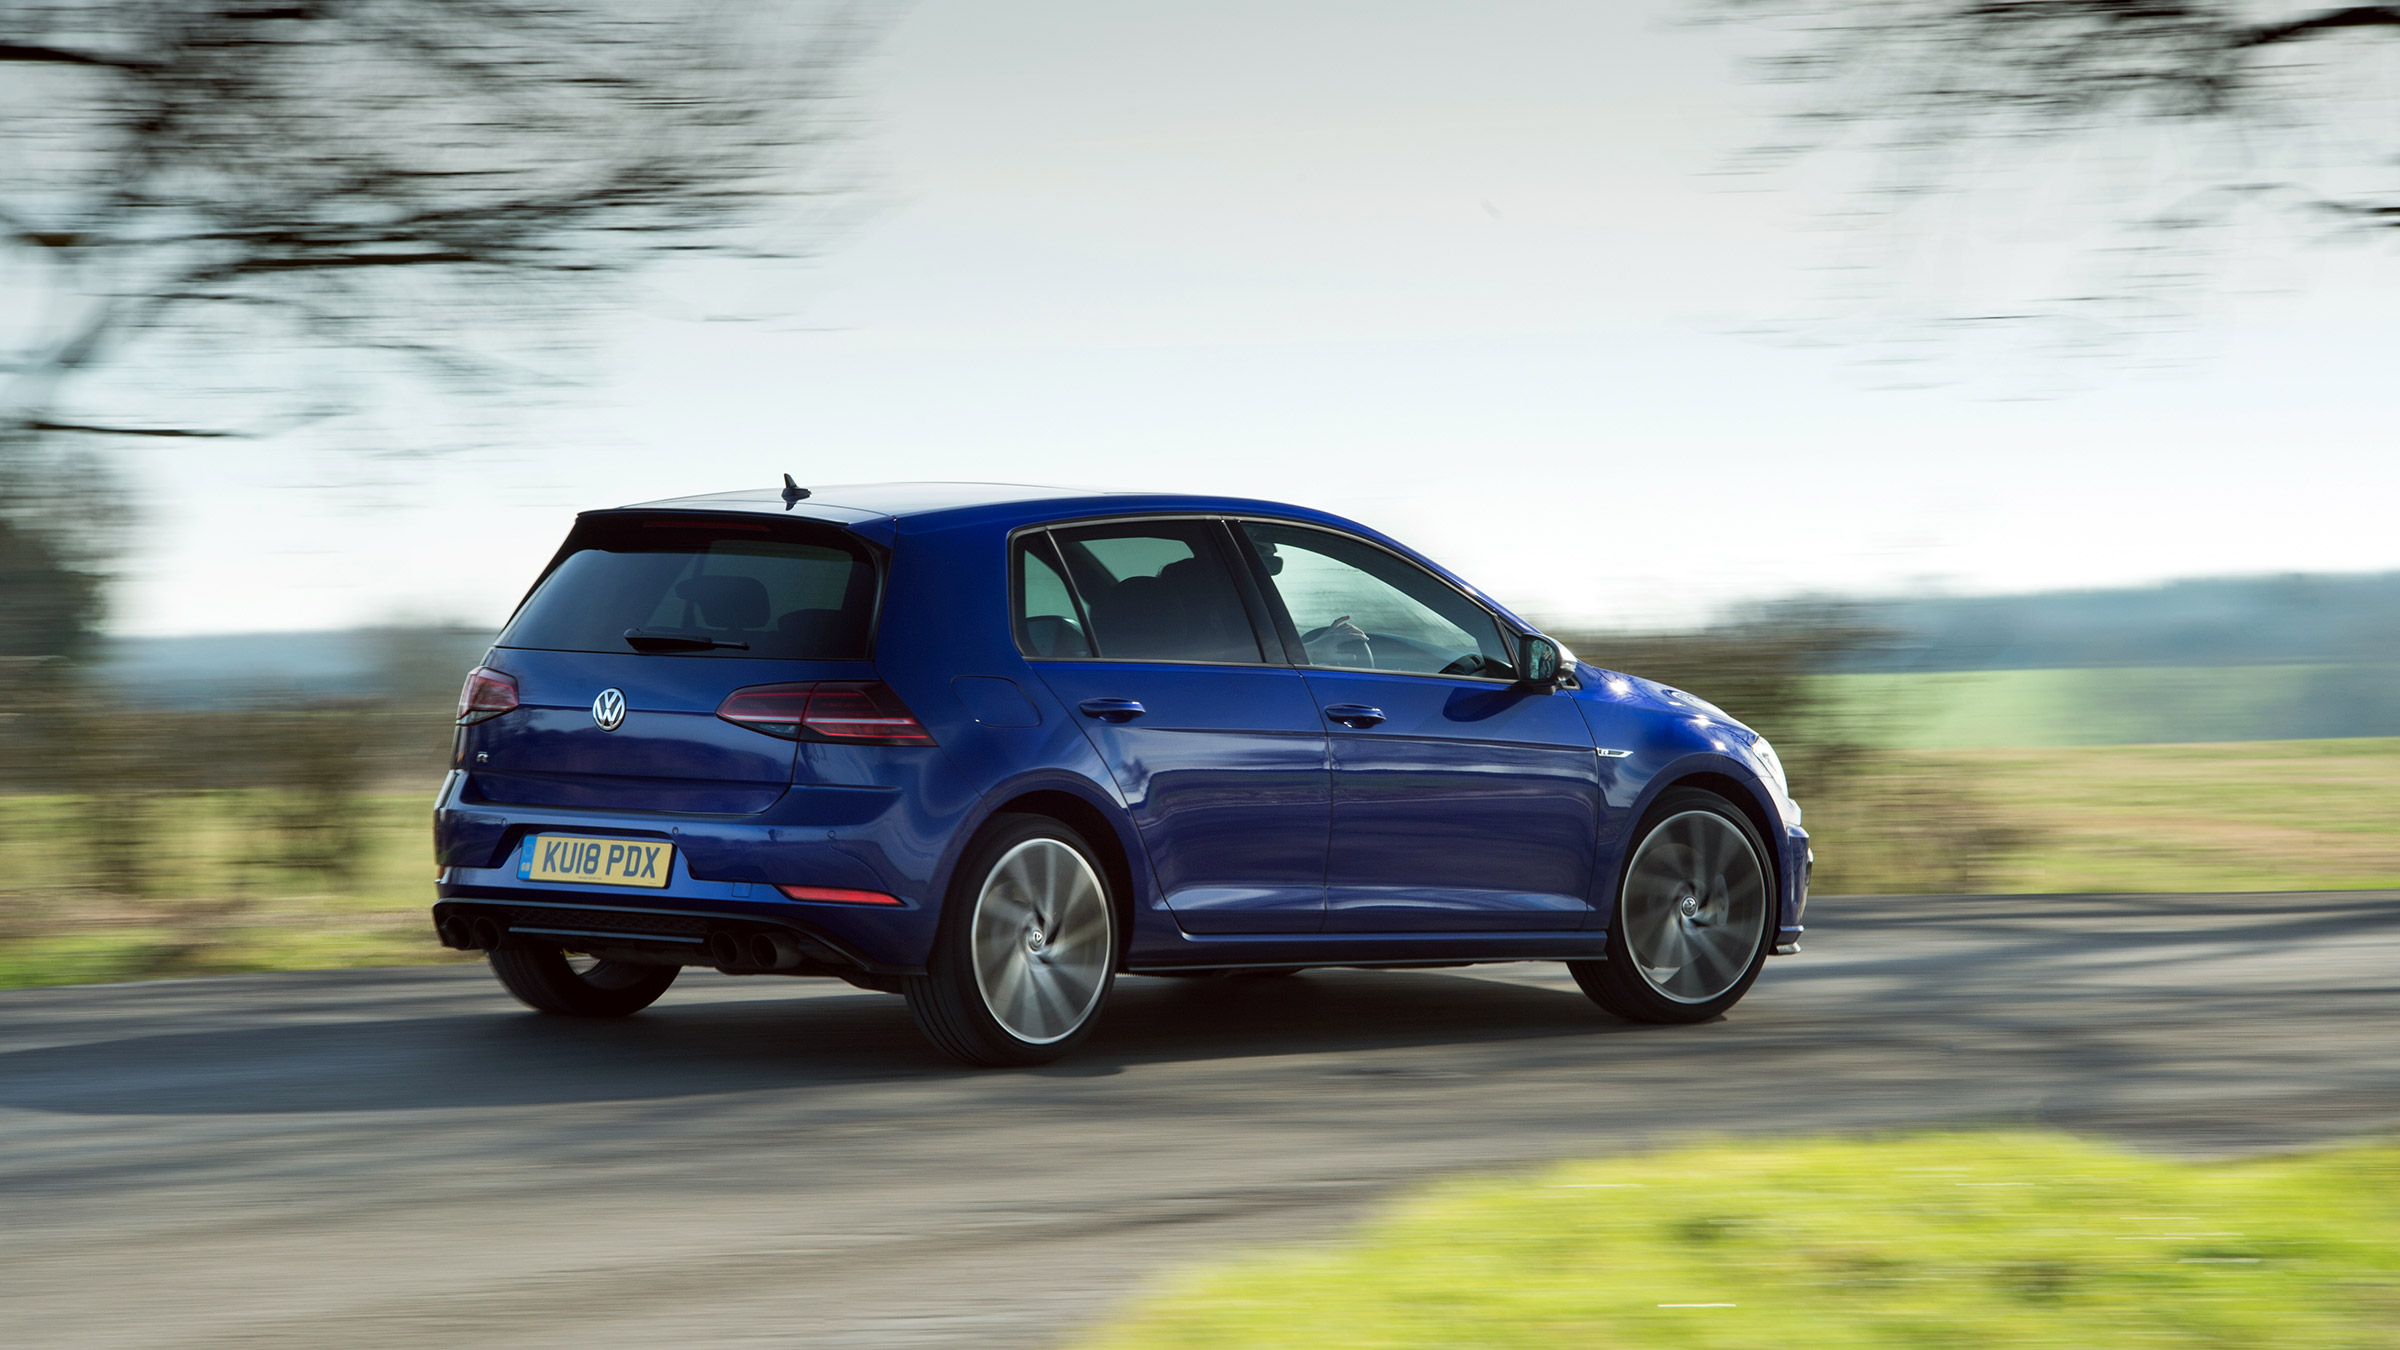 2019 Volkswagen Golf R review - the art of having your cake